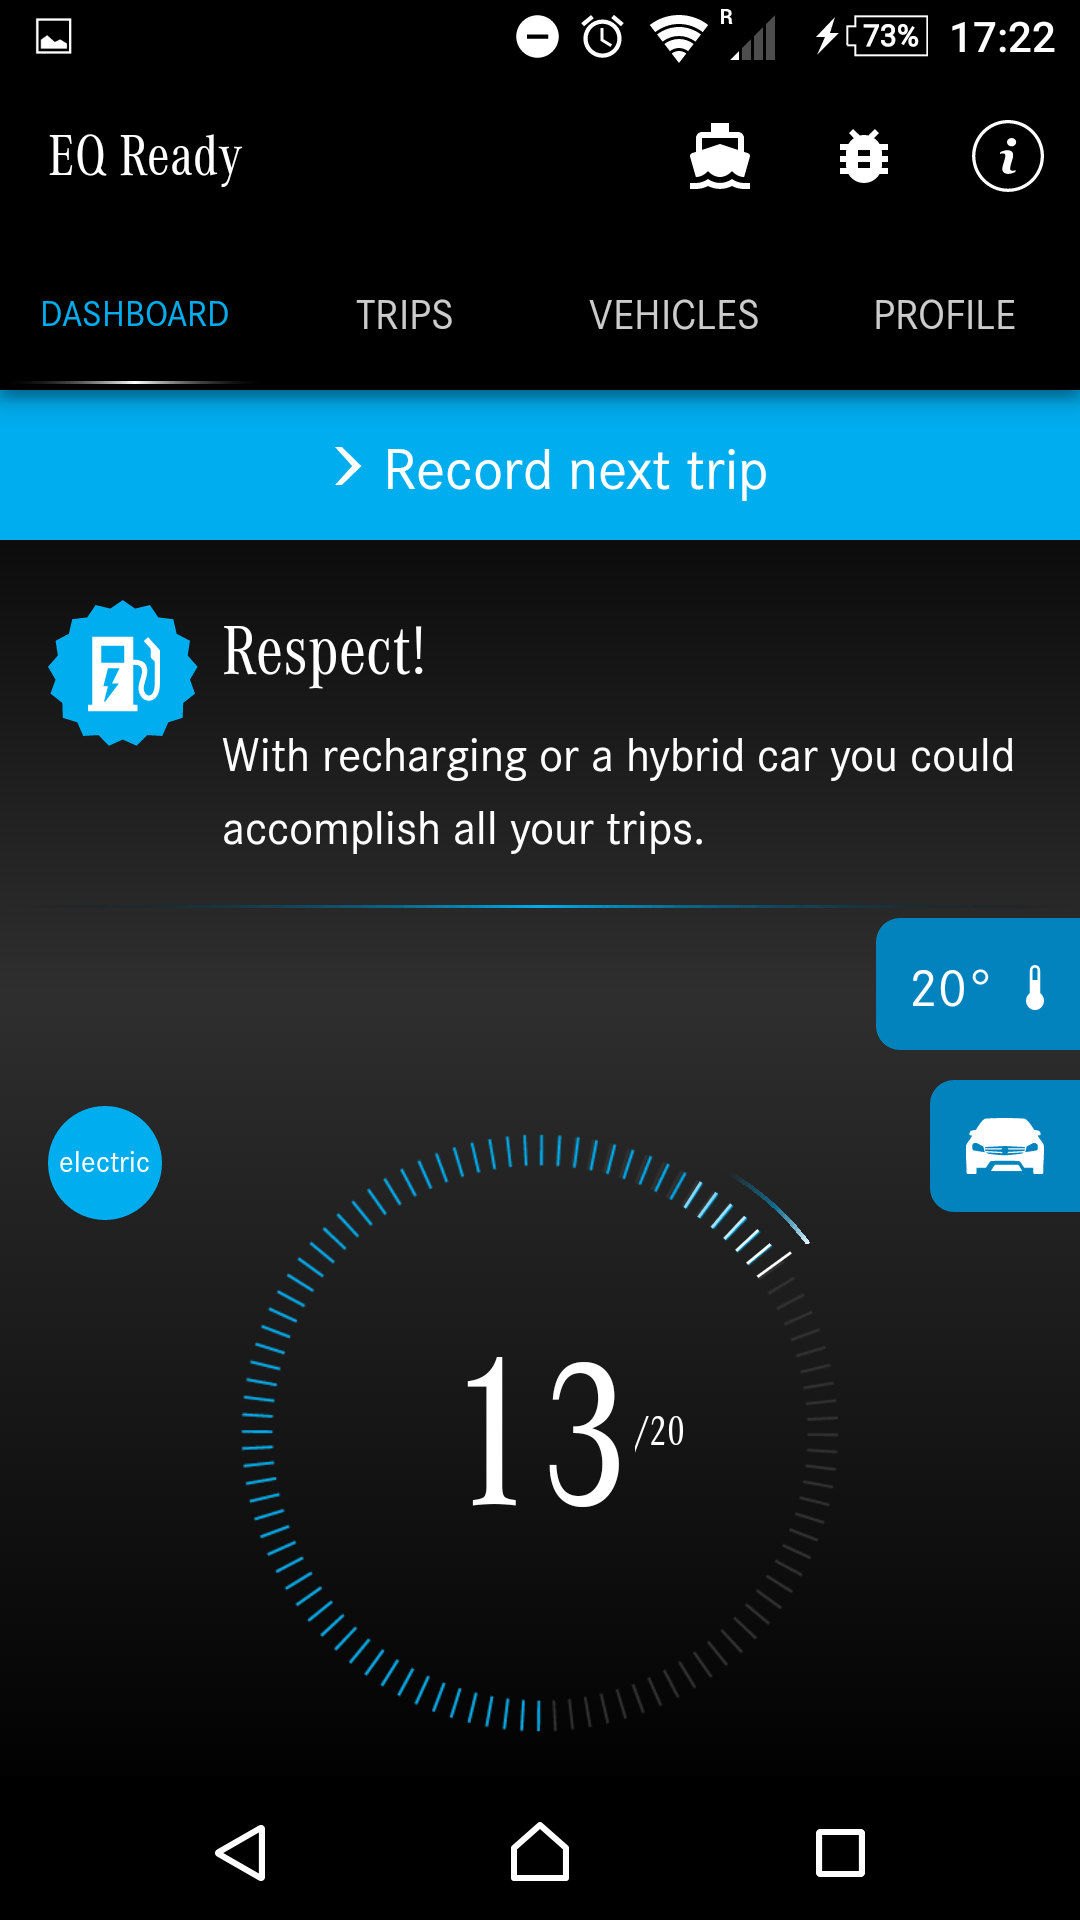 Mercedes-Benz EQ Ready App | Features, How It Works ...